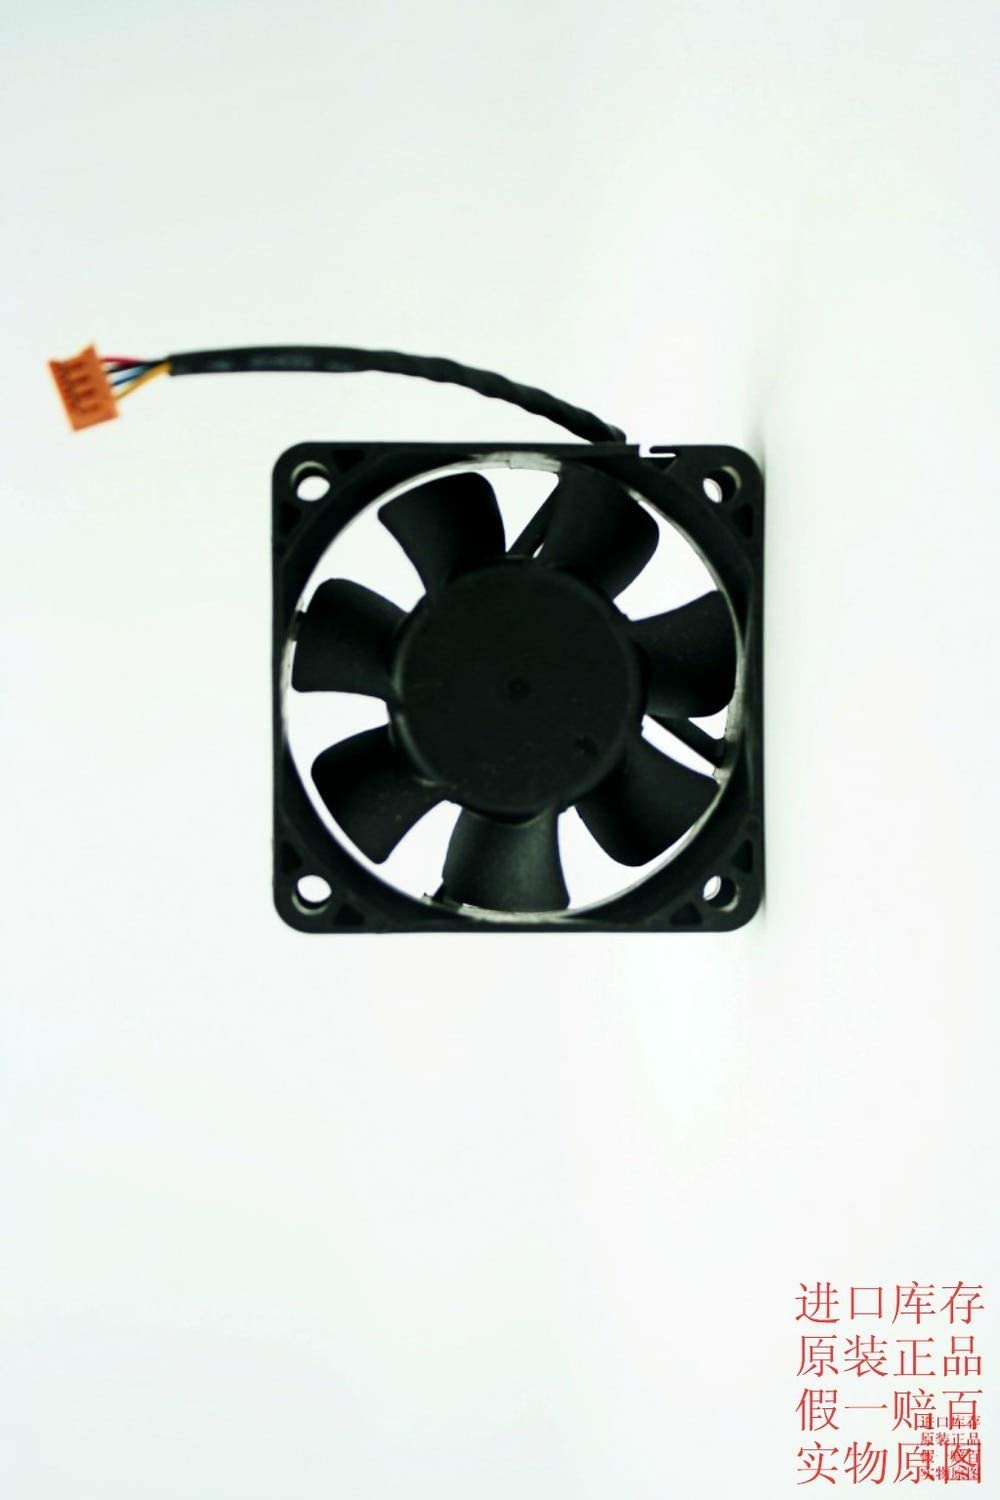 for delta AFB0612EHD 60mm 6cm DC 12V 0.47A dual ball bearing cooling fan